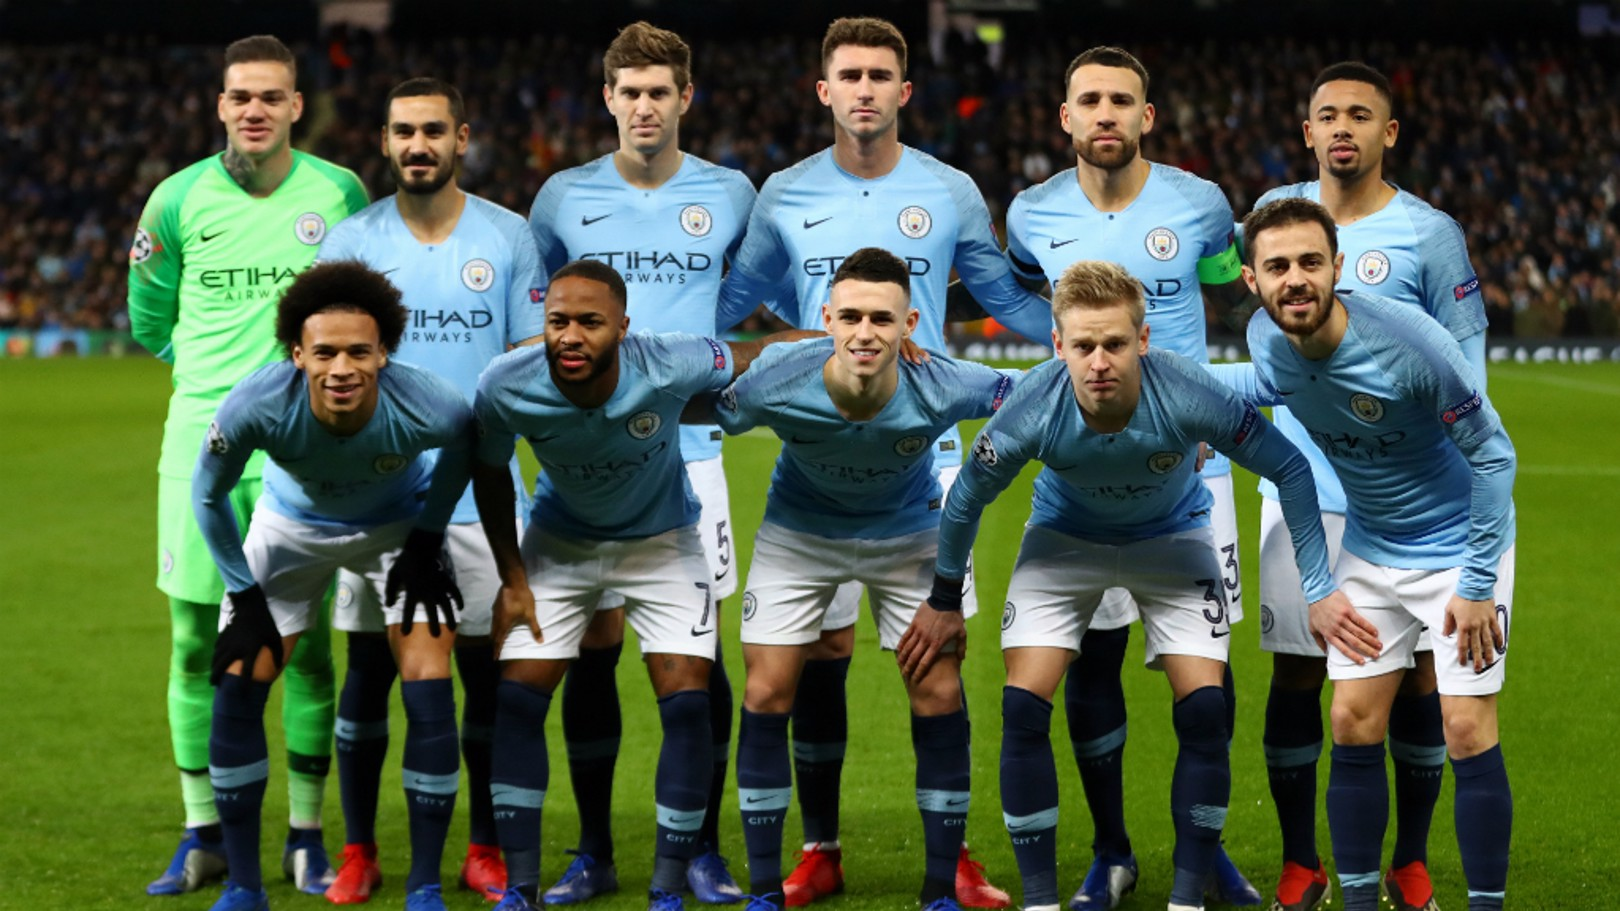 THE CHOSEN XI: The City starting line-up